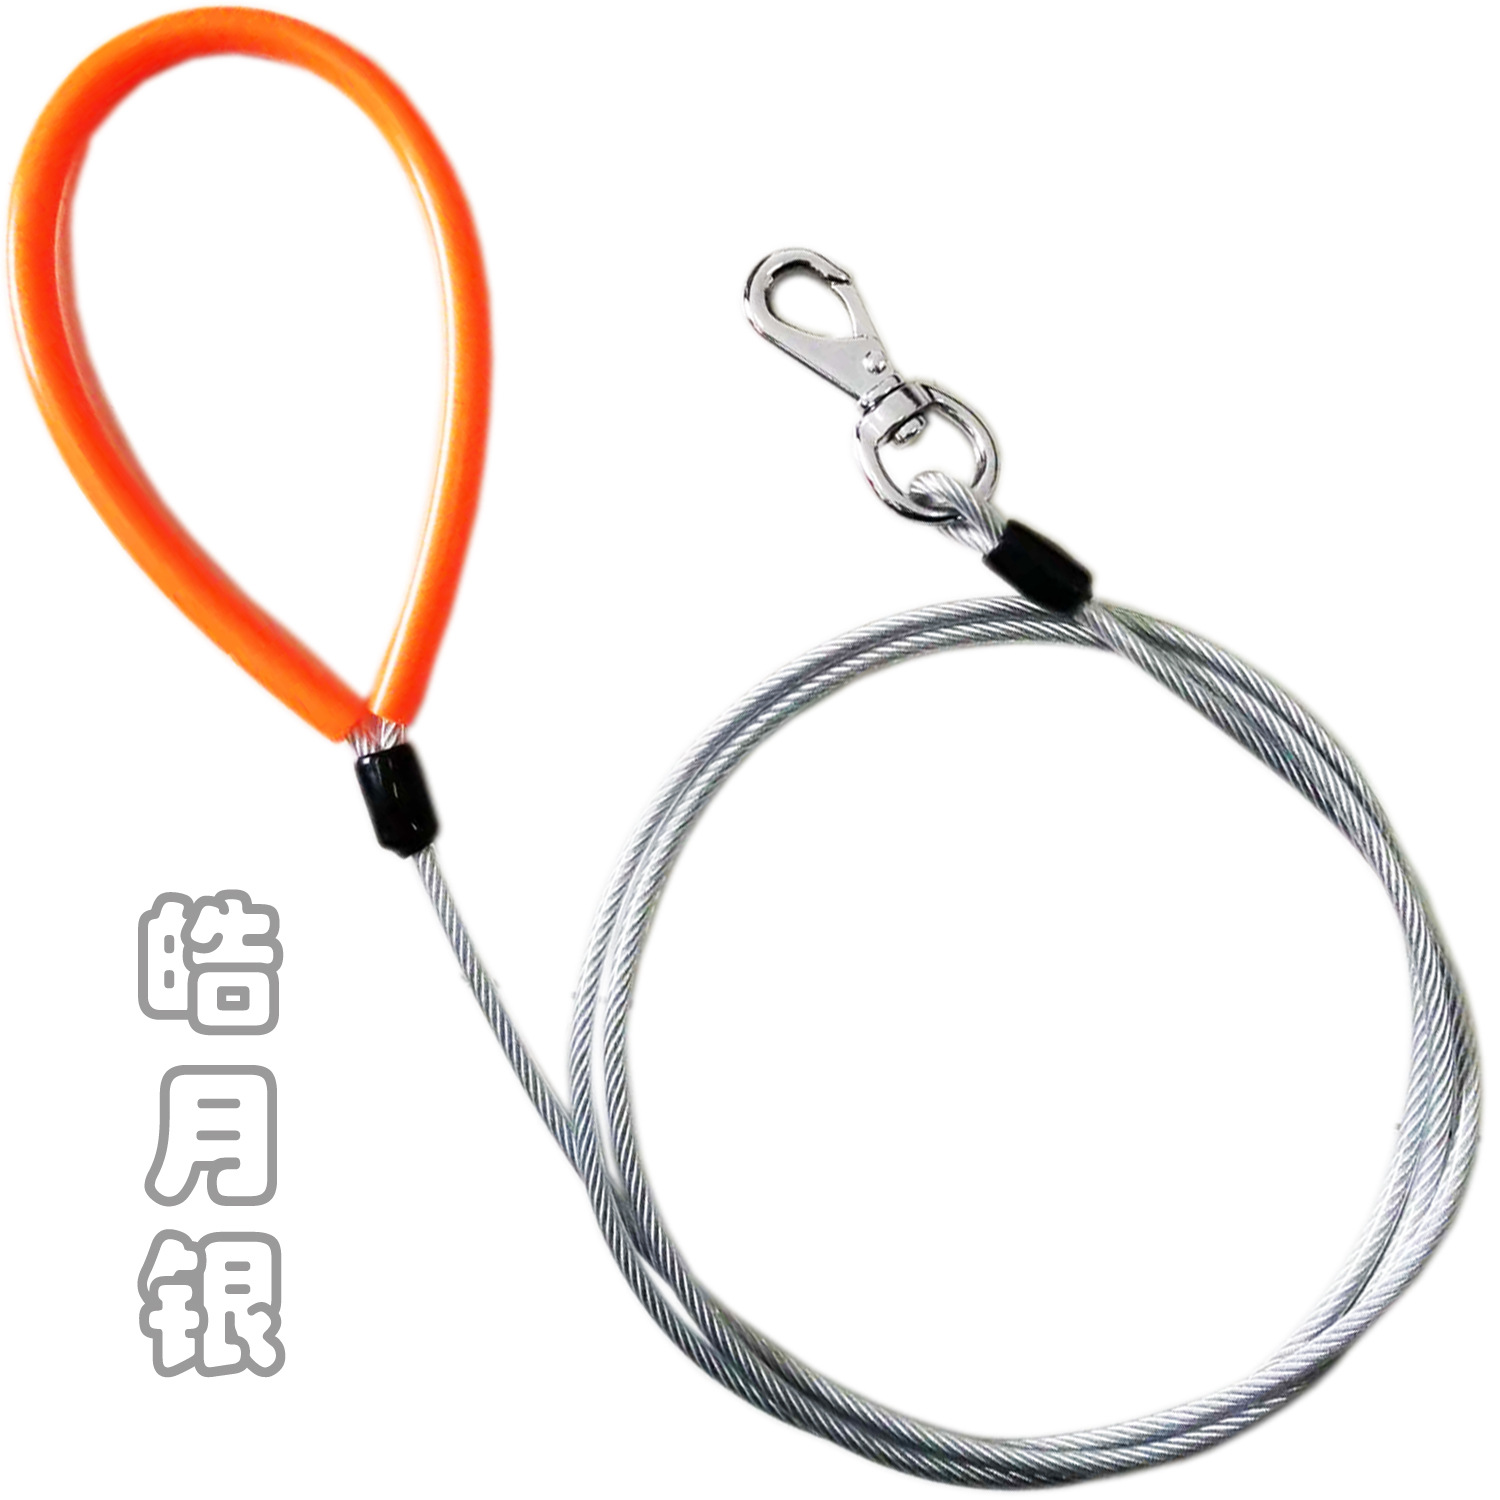 Manufacturers Direct Selling Hot Selling Wire Rope Leash Pet Dog Hand Holding Rope Dog Chain Pet Supplies Wholesale Dog Leash